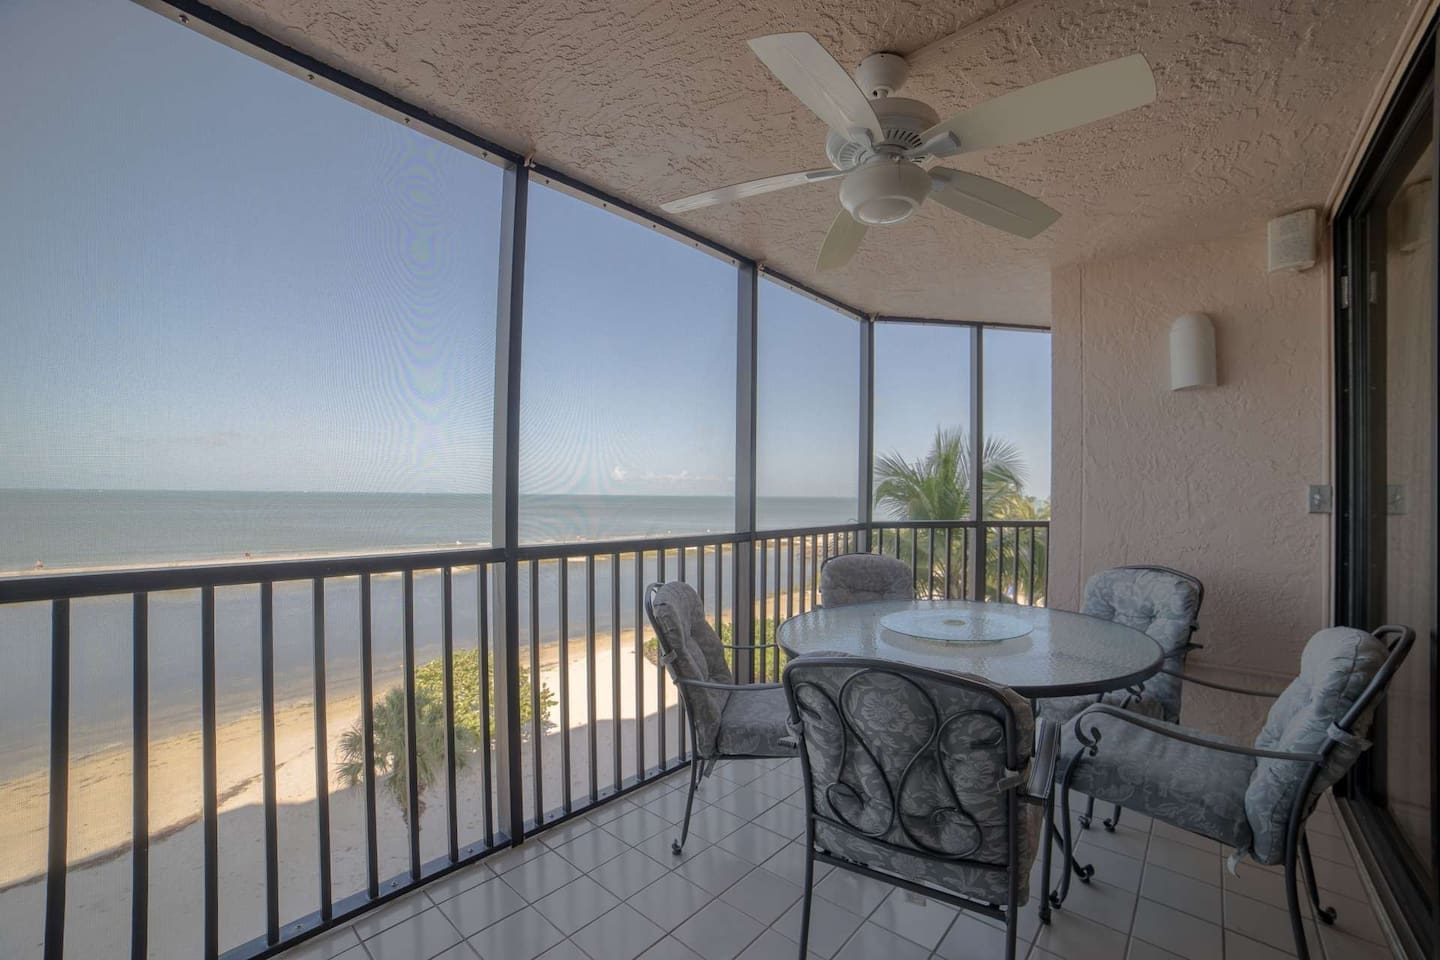 This priceless view of the Gulf is yours - morning, noon, and night from your private 5th floor balcony!